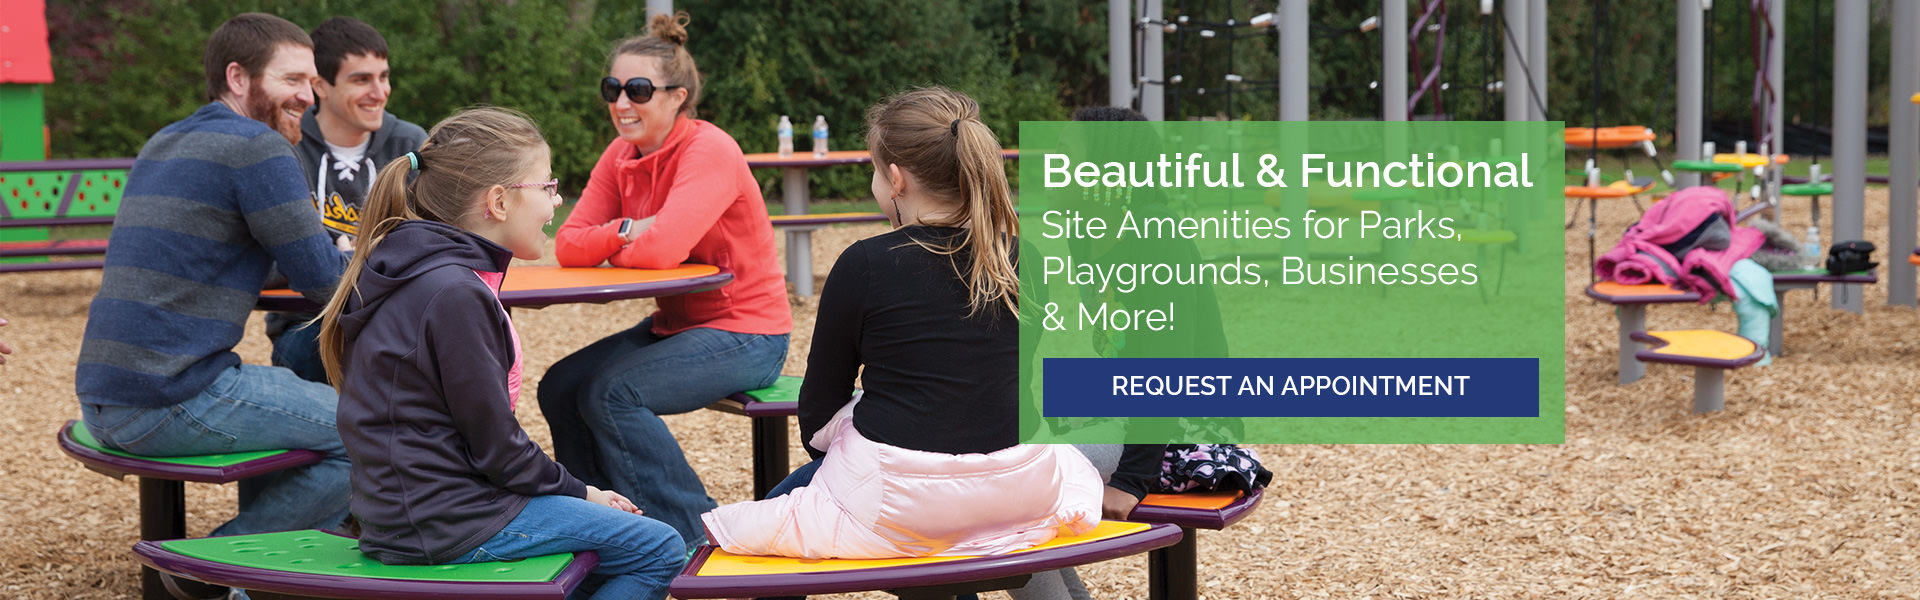 Beautiful & Functional Site Amenities